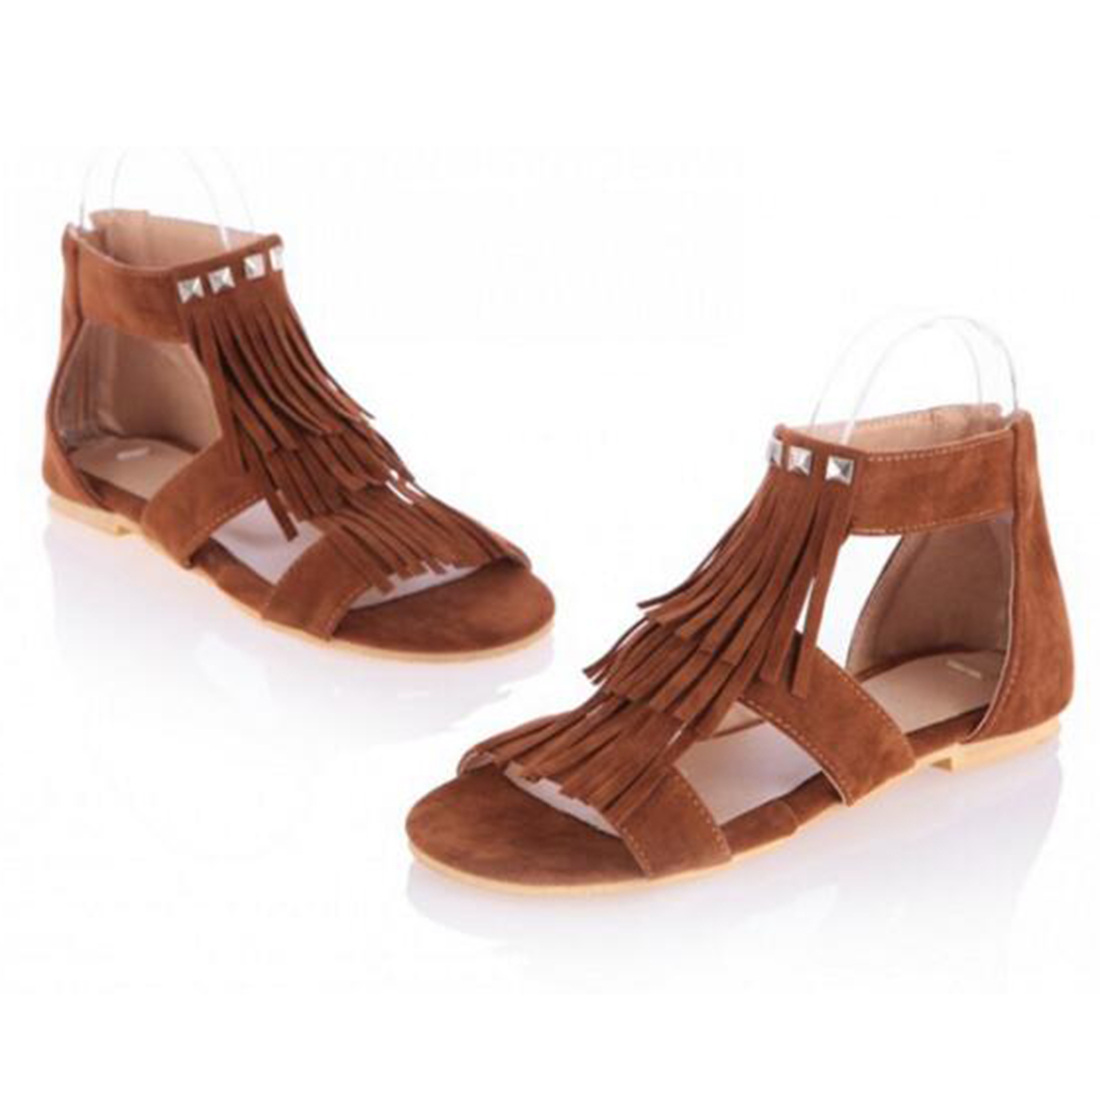 Summer Shoe women Gladiator Sandals ladies fringe flip Sandals Zipper Sandals Punk Flat Suede Leather Fringe Sandals Shoes<br>